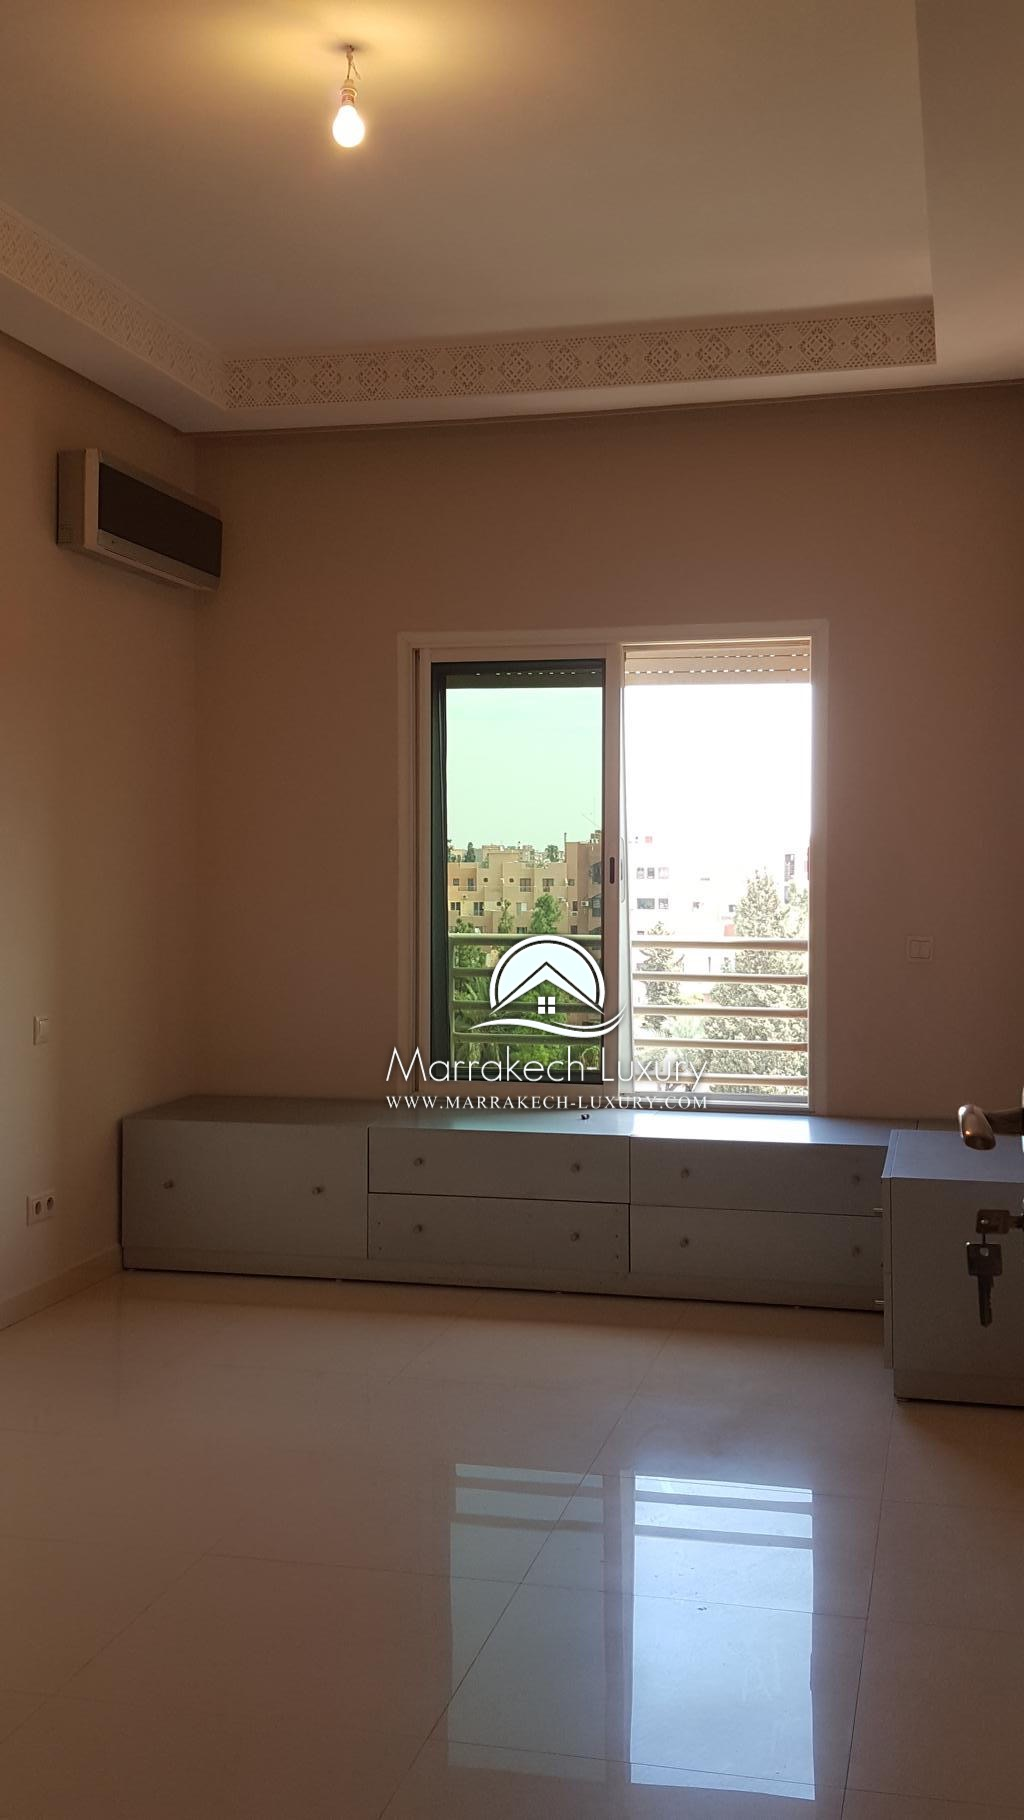 Beau penthouse 2 chambres moderne louer victor hugo for Location appartement sans agence immobiliere